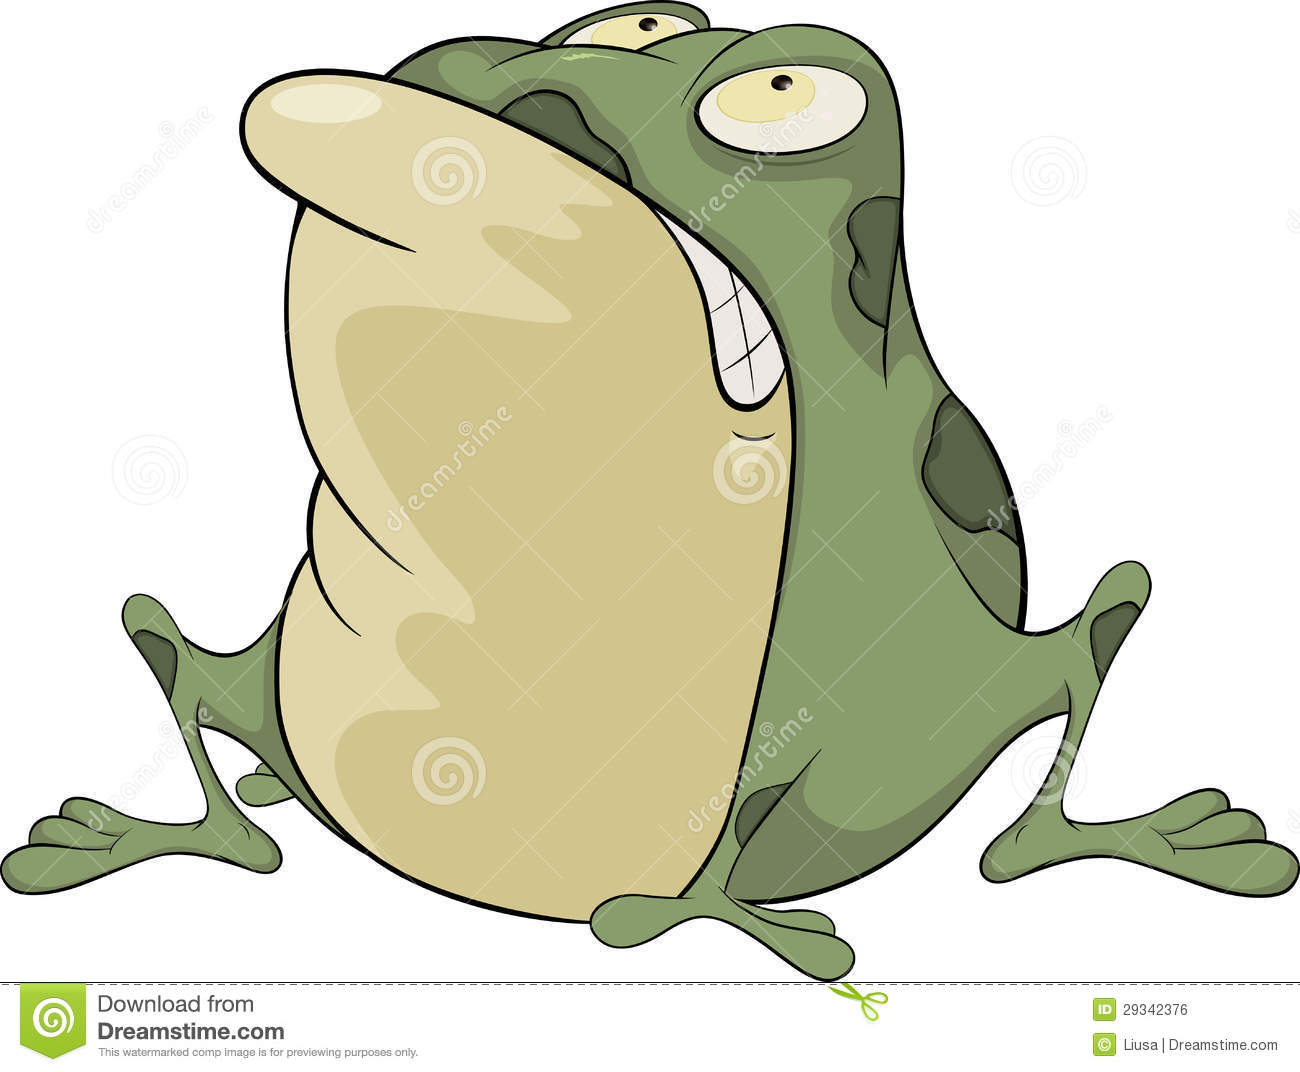 the green toad cartoon royalty free stock image   image